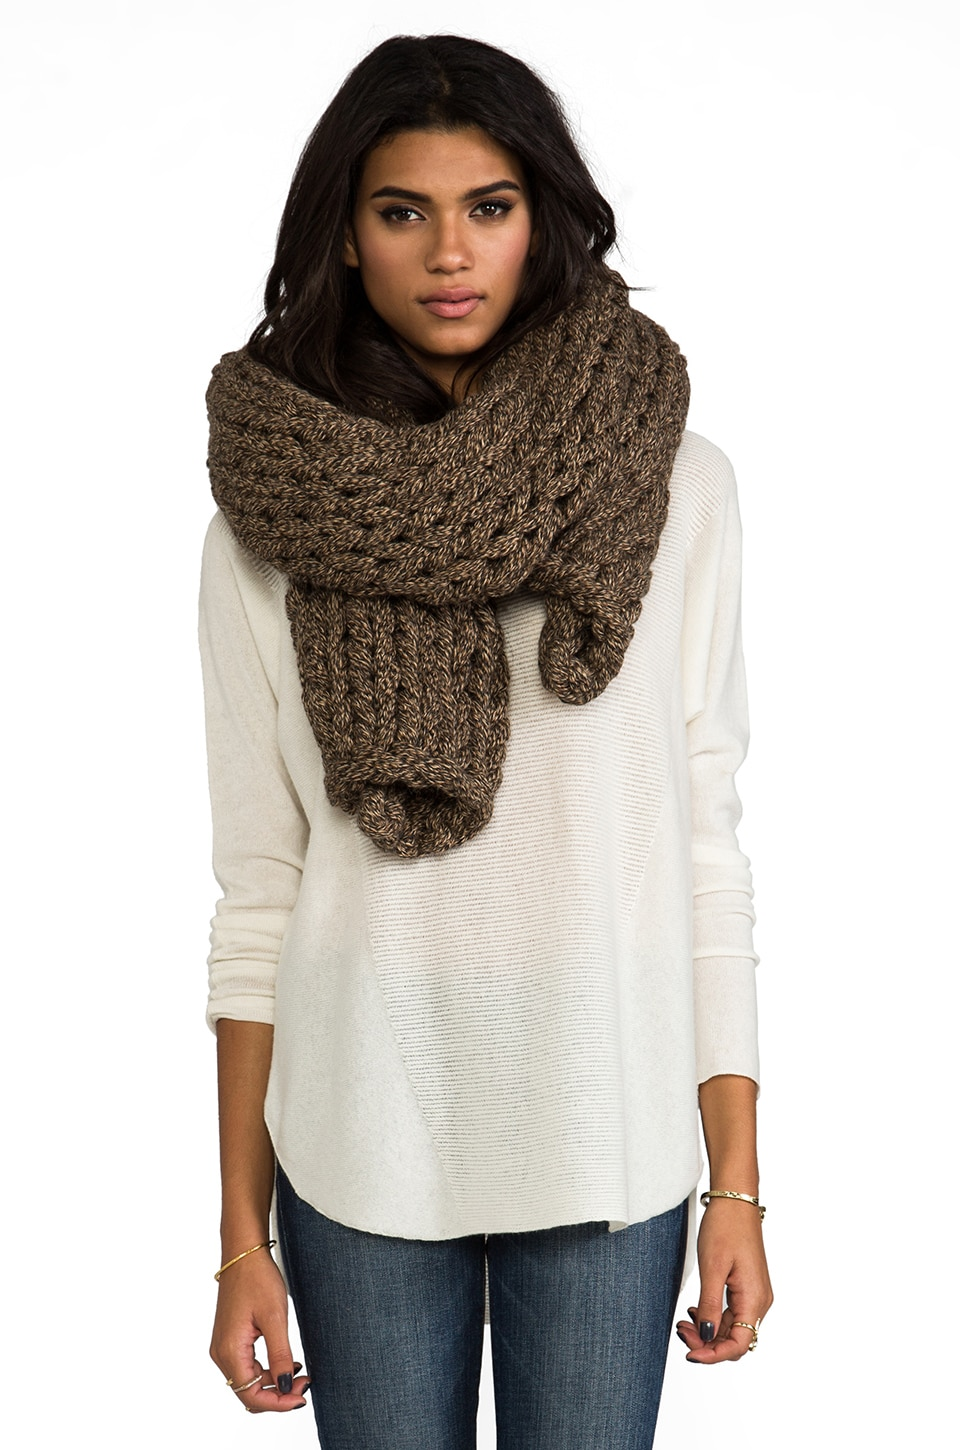 DE NADA Large Knit Shawl in Brown Mix